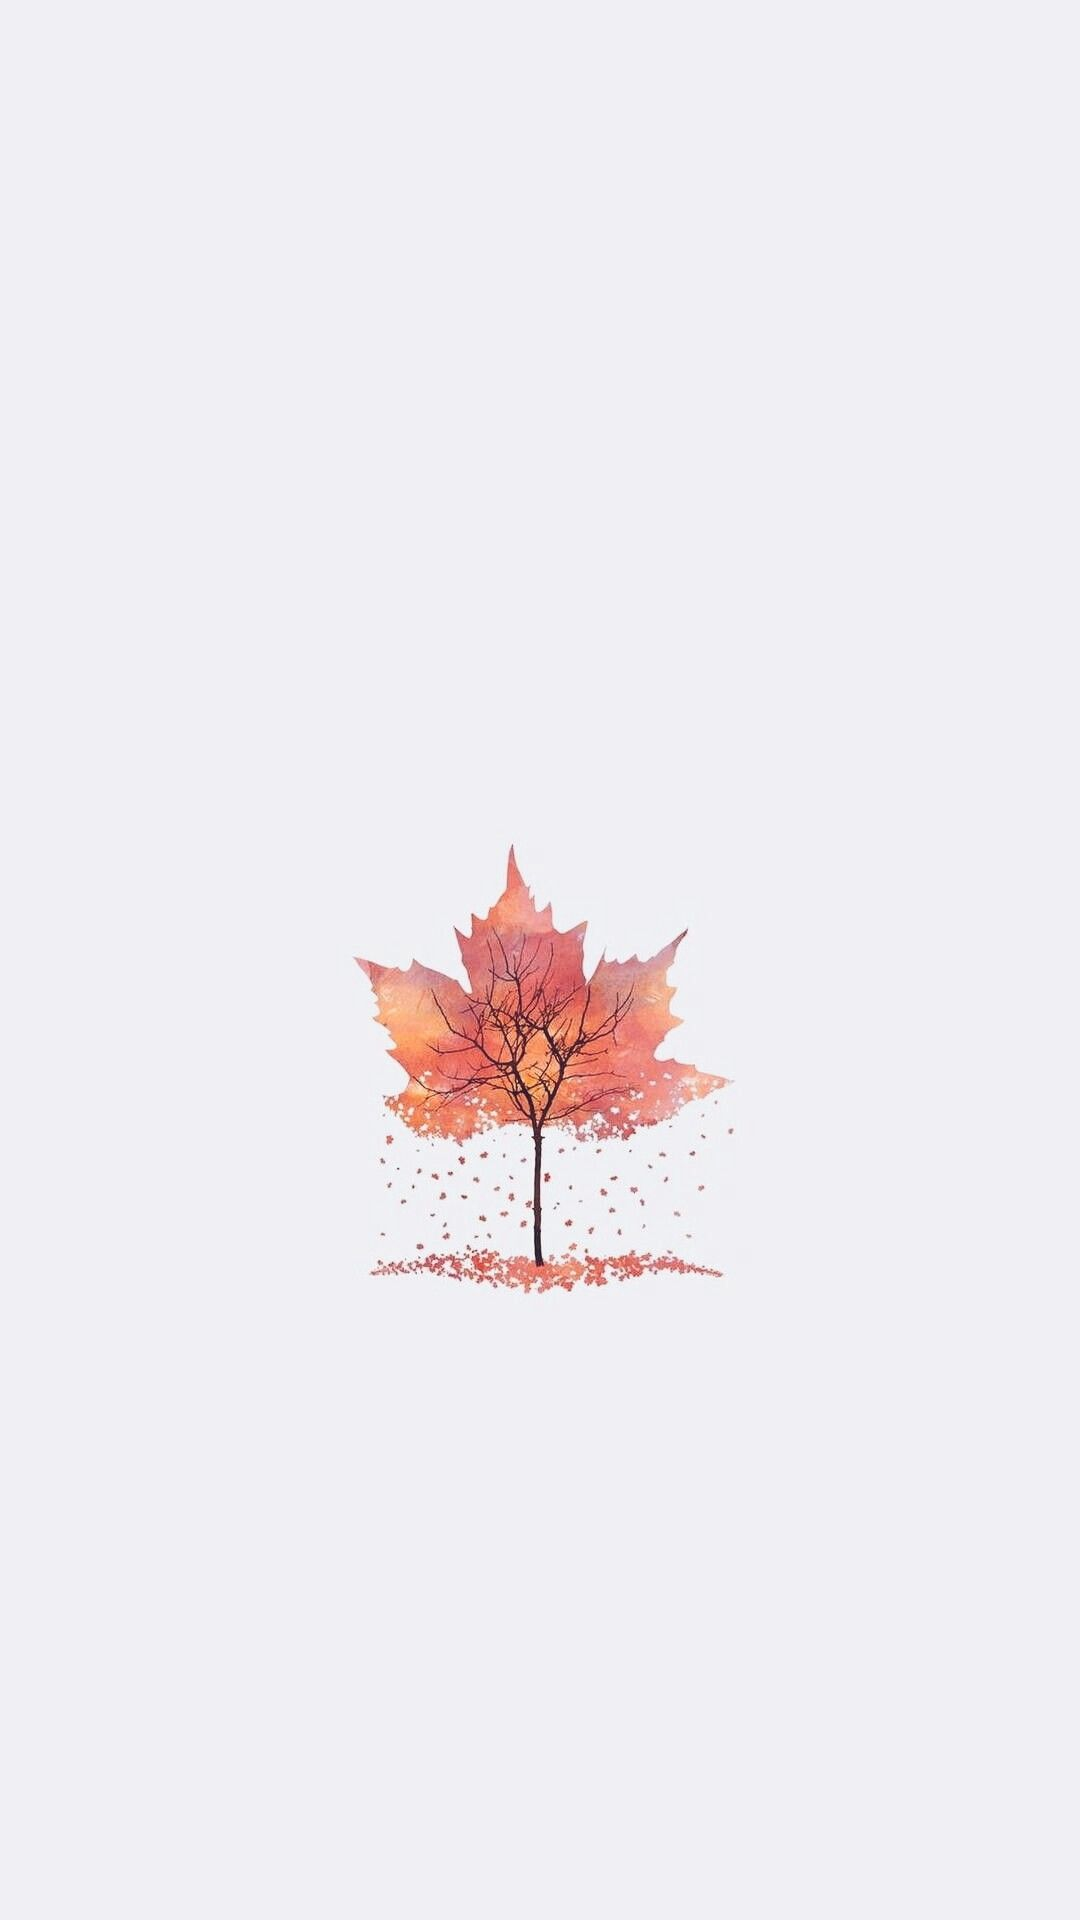 White Fall Leaf Background Phone Autumn Iphone Wallpaper Lock Screen Fall Wallpaper Autumn Leaves Wallpaper Iphone Wallpaper Fall